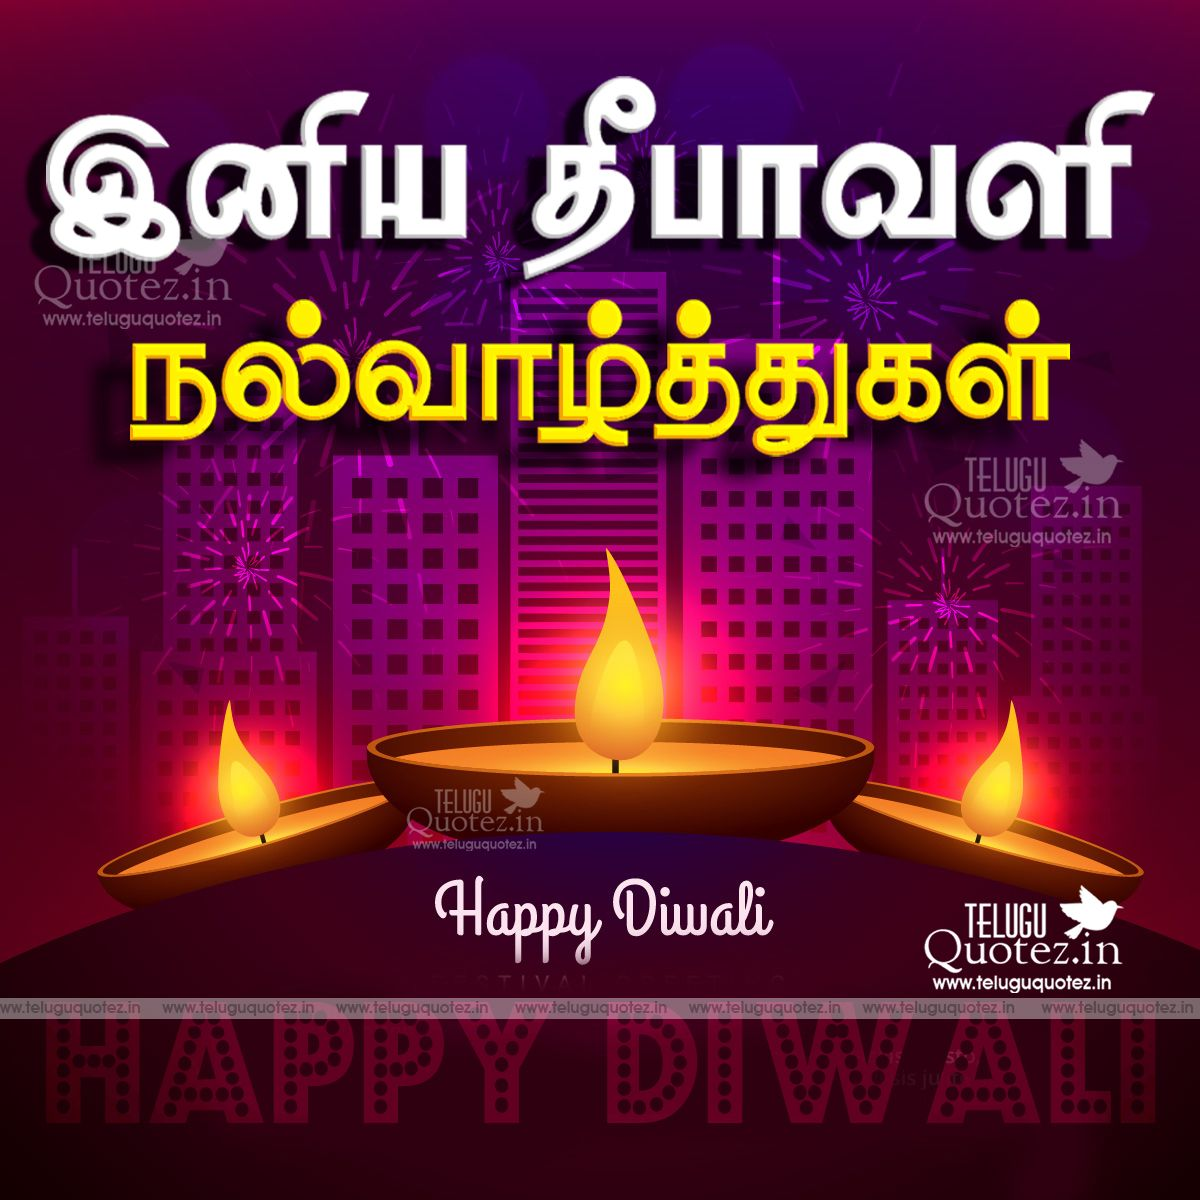 Happy diwali tamil quotes wisheswish you happy diwali tamil happy diwali tamil quotes wisheswish you happy diwali tamil quoteshappy diwali sms kristyandbryce Image collections